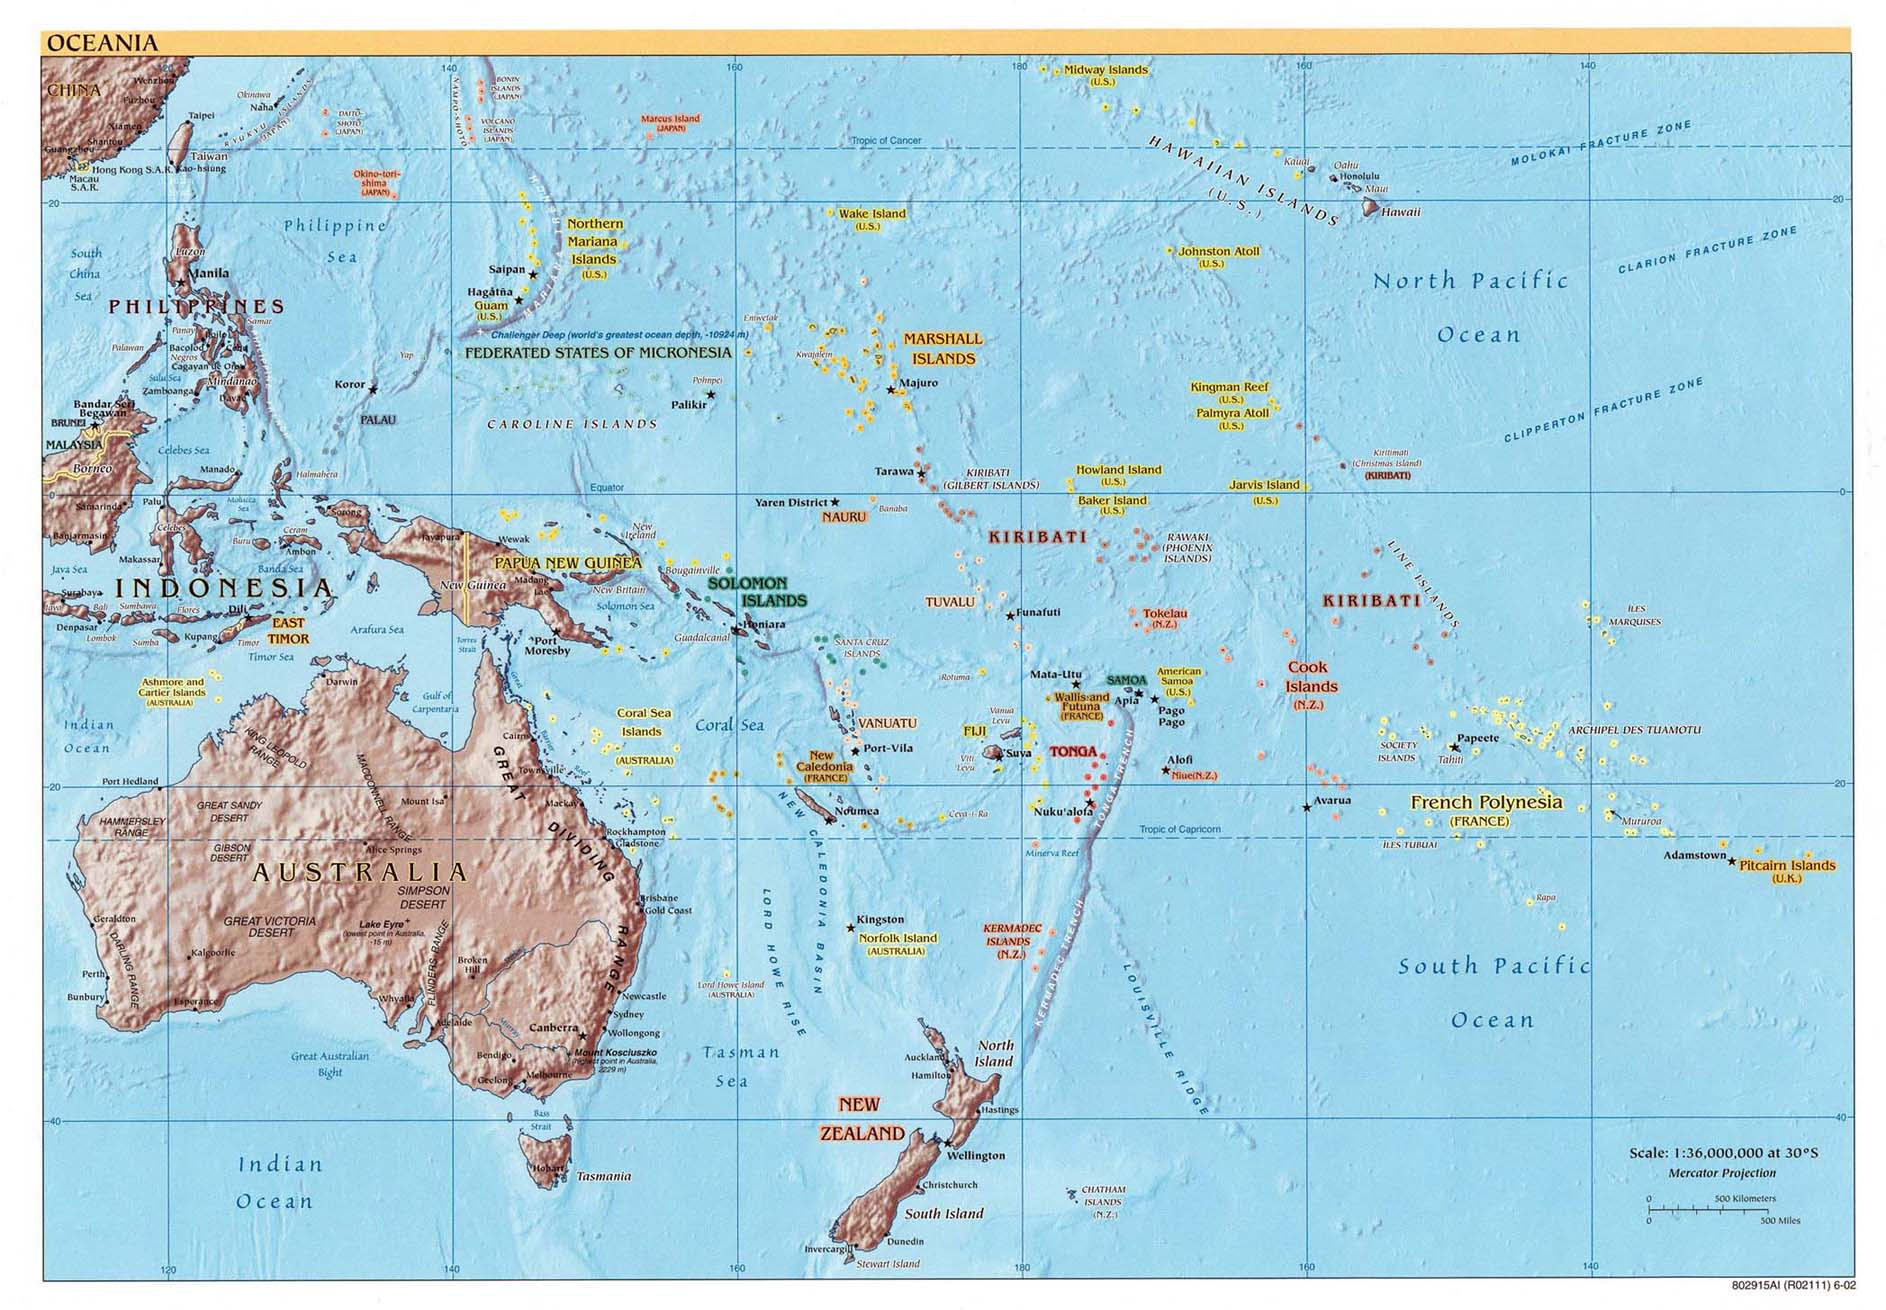 Map of pacific ocean relief map worldofmaps online maps map of pacific ocean relief map gumiabroncs Choice Image